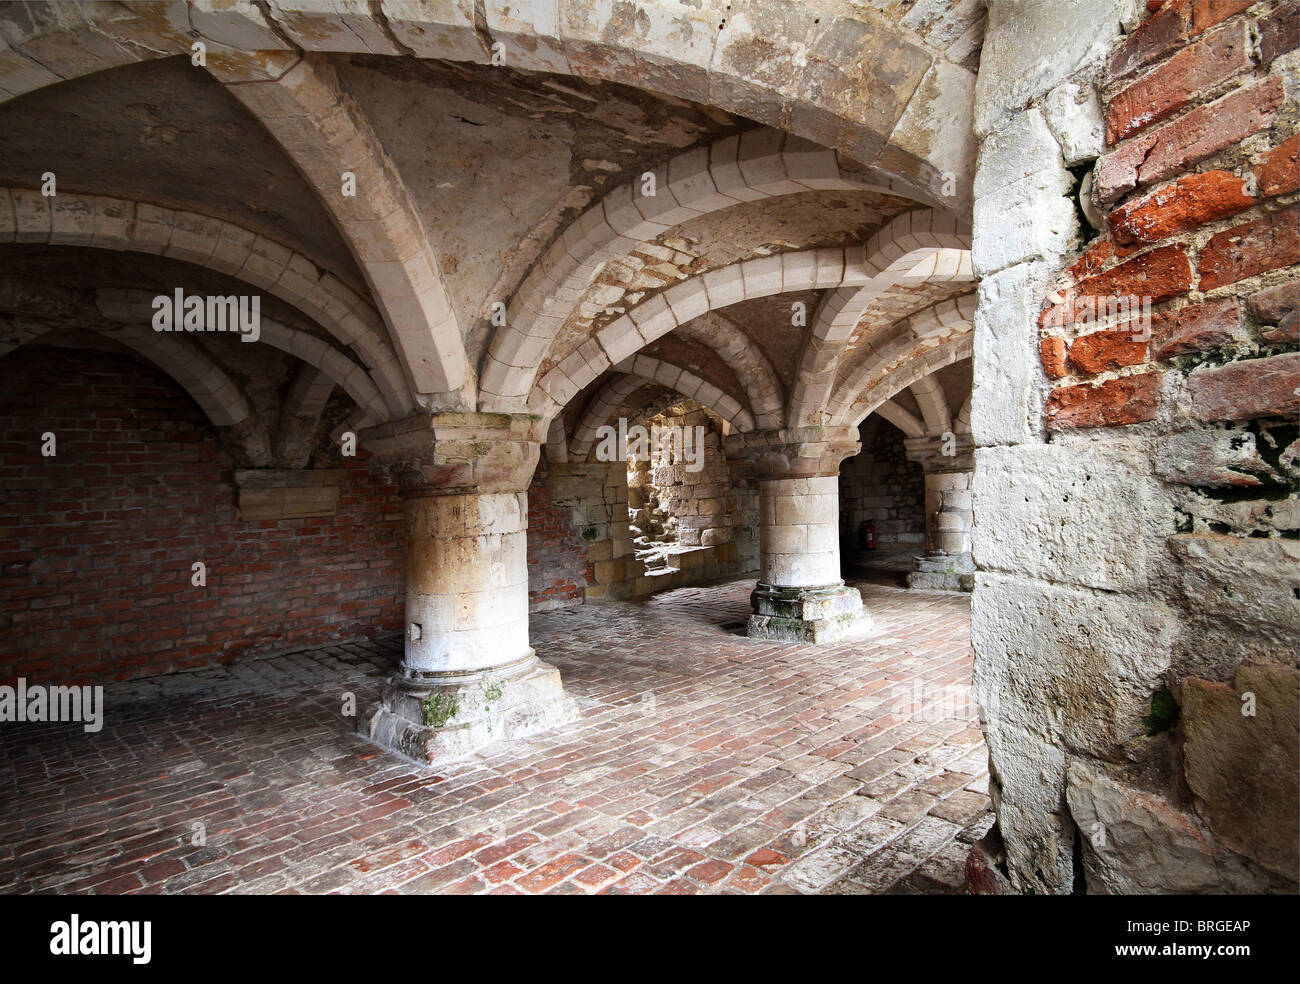 Norman stonework in north Yorkshire from medieval times. - Stock Image